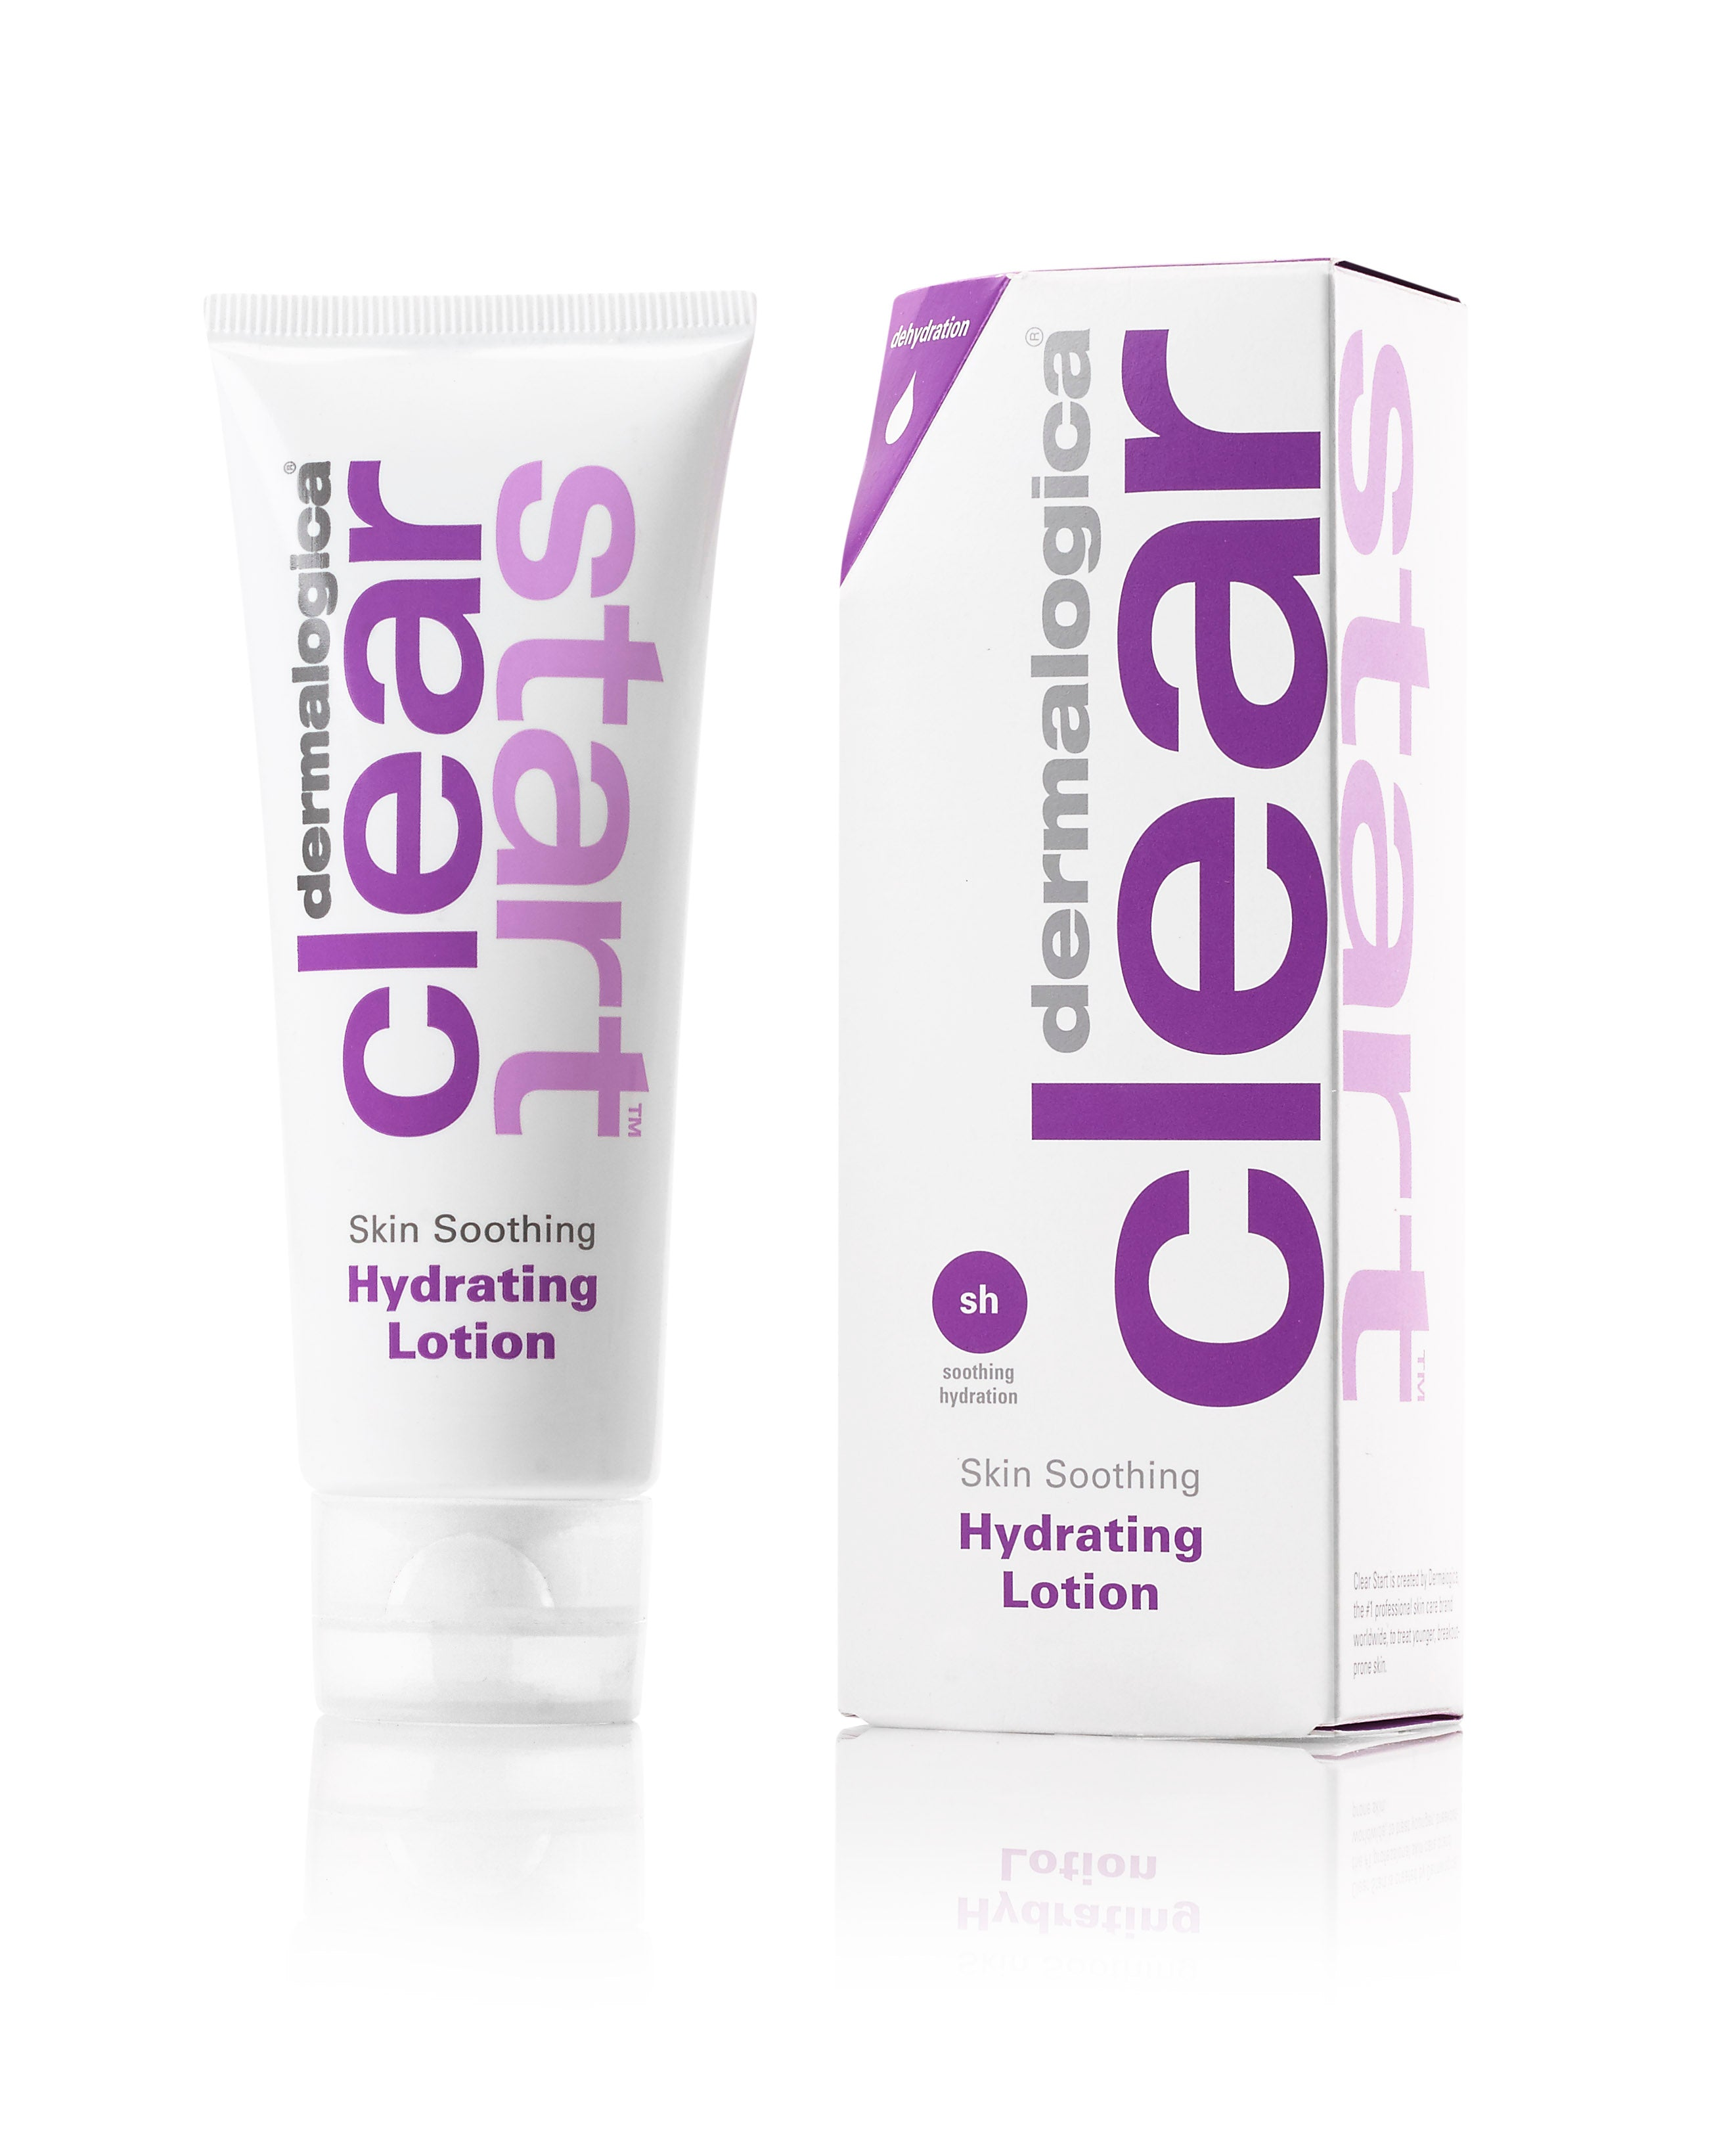 SKIN SMOOTHING HYDRATING LOTION